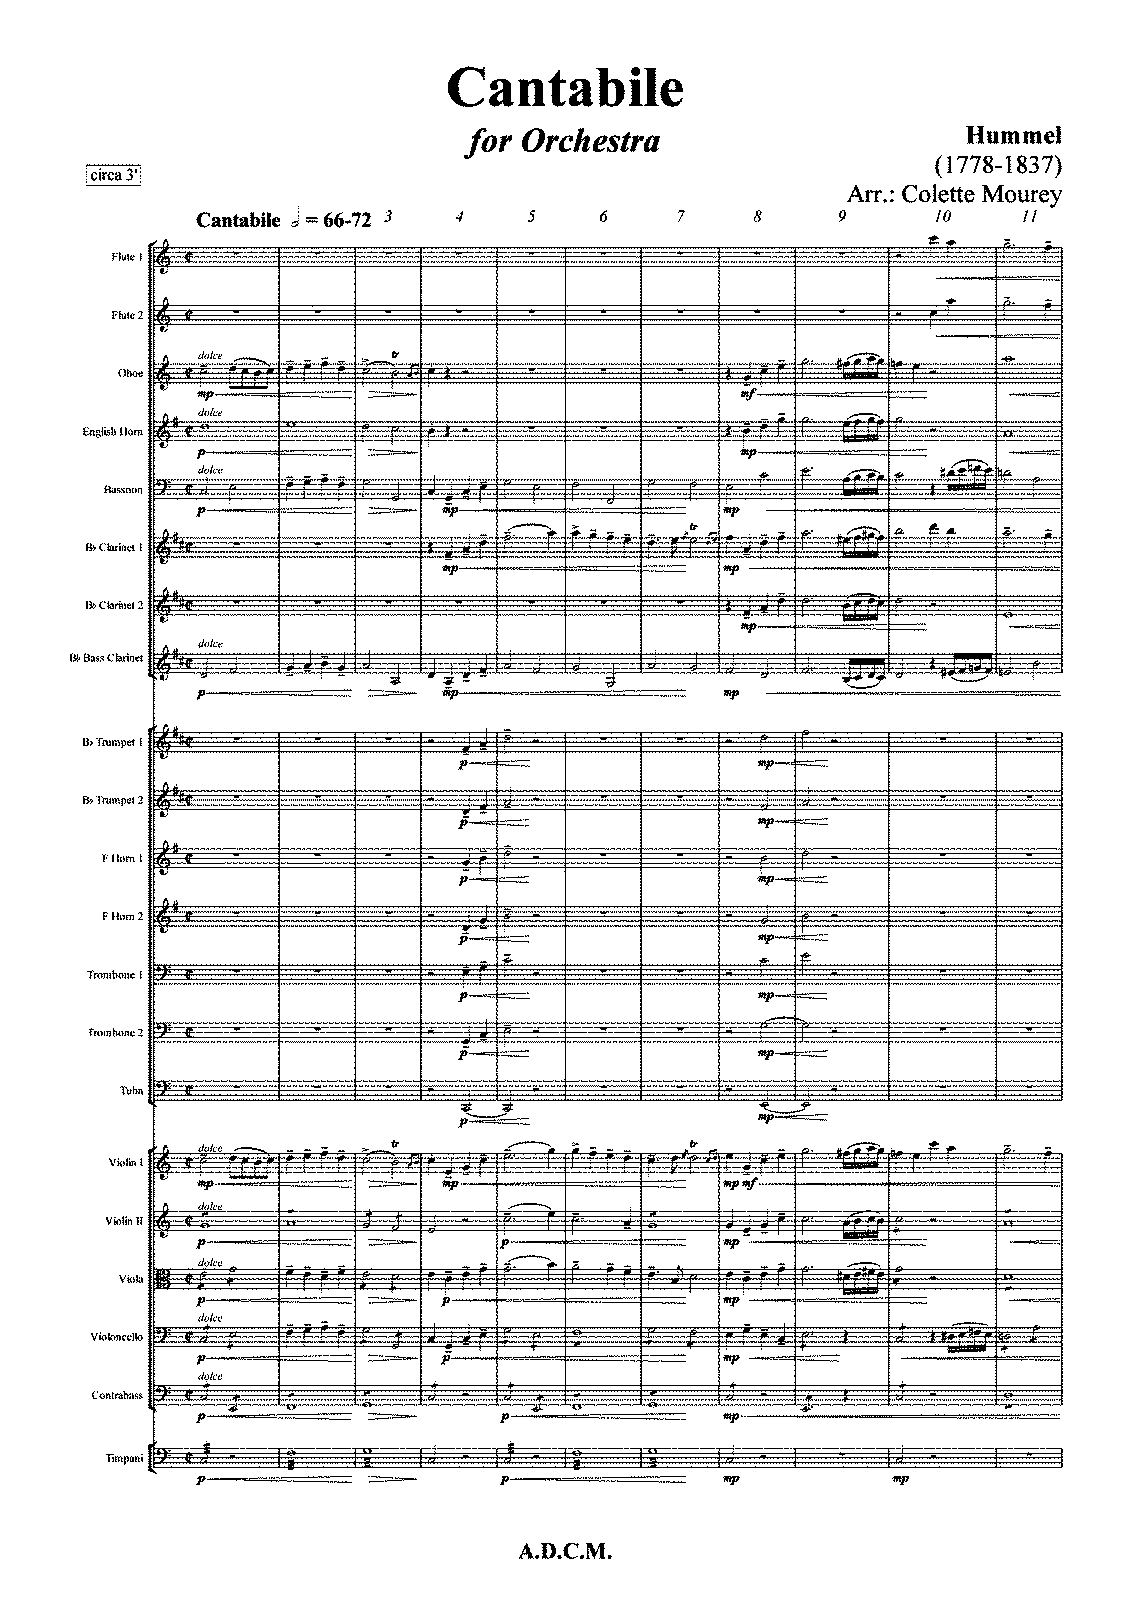 PMLP156923-Cantabile Hummel for Orchestra Score and Parts.pdf